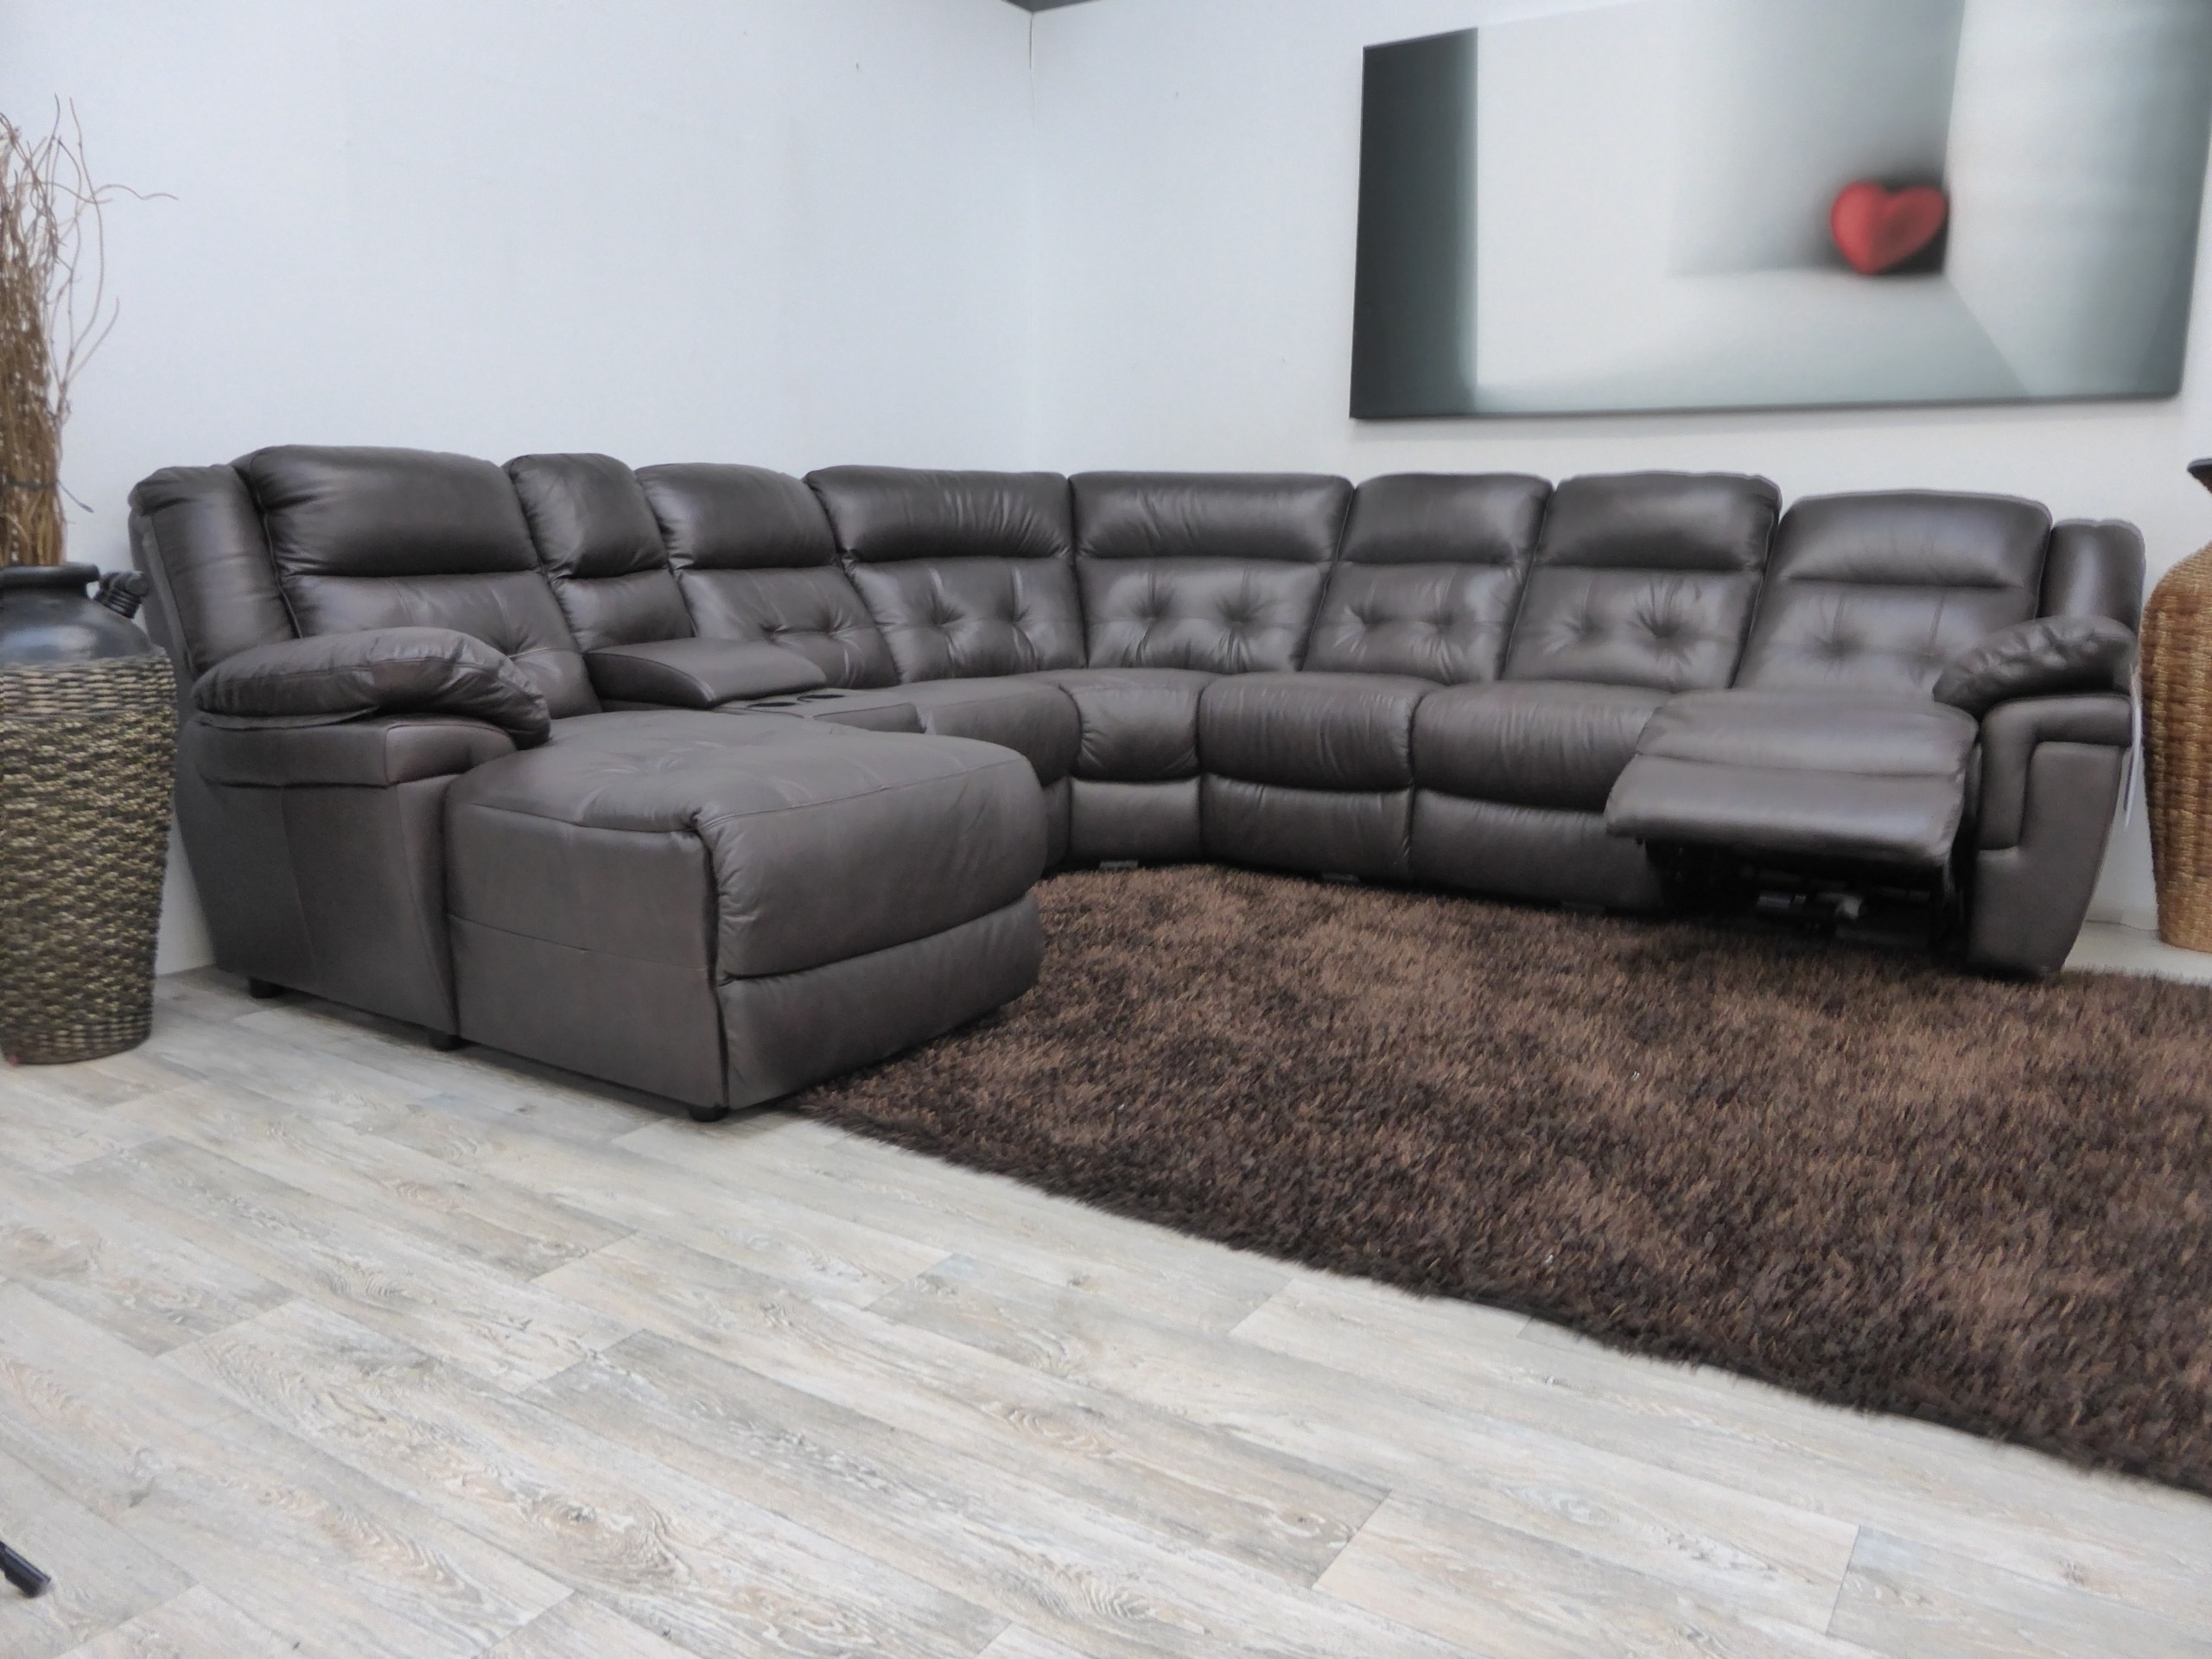 Awesome Sectional Sofas Craigslist Buildsimplehome Within Preferred At View 1 Of